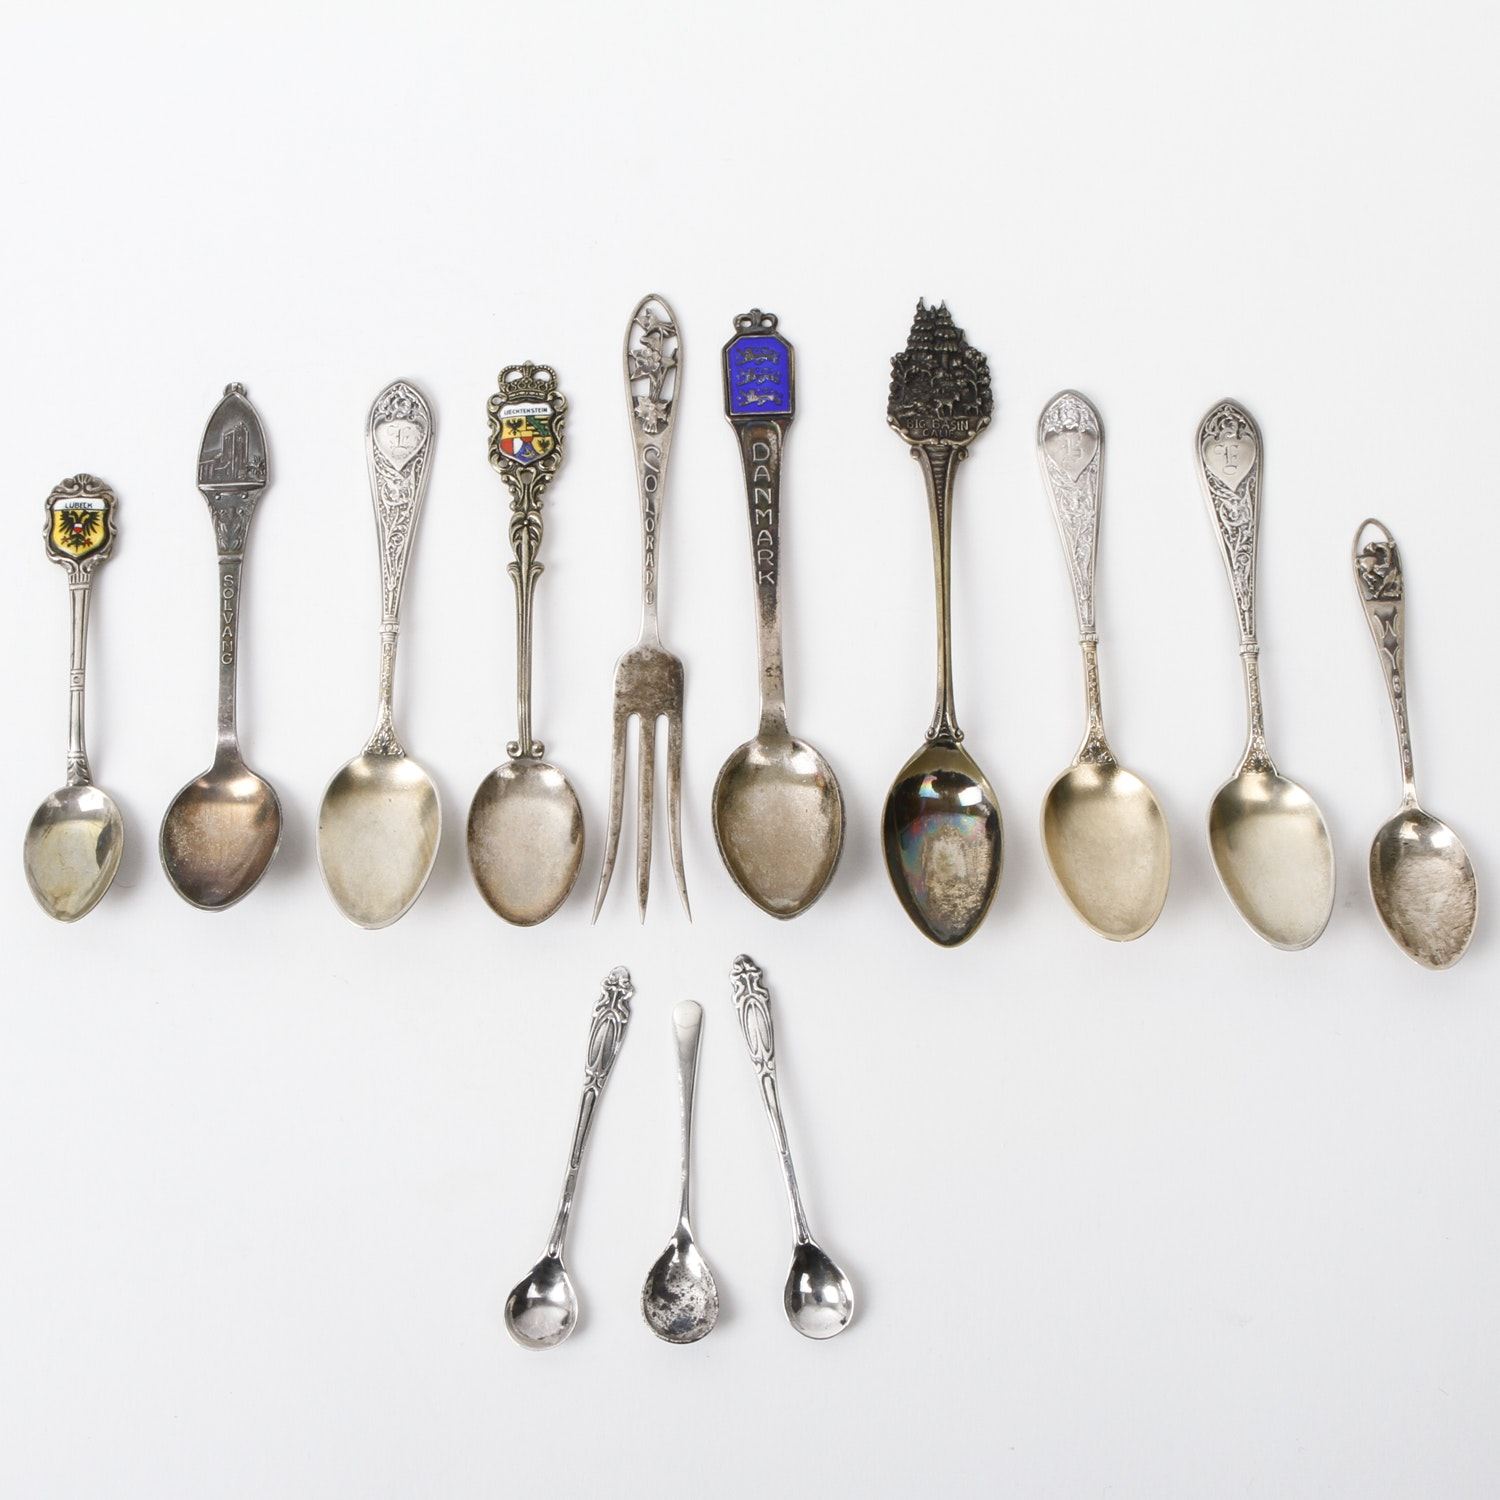 Vintage and Antique Nordic Sterling and 800 Silver Souvenir Spoons